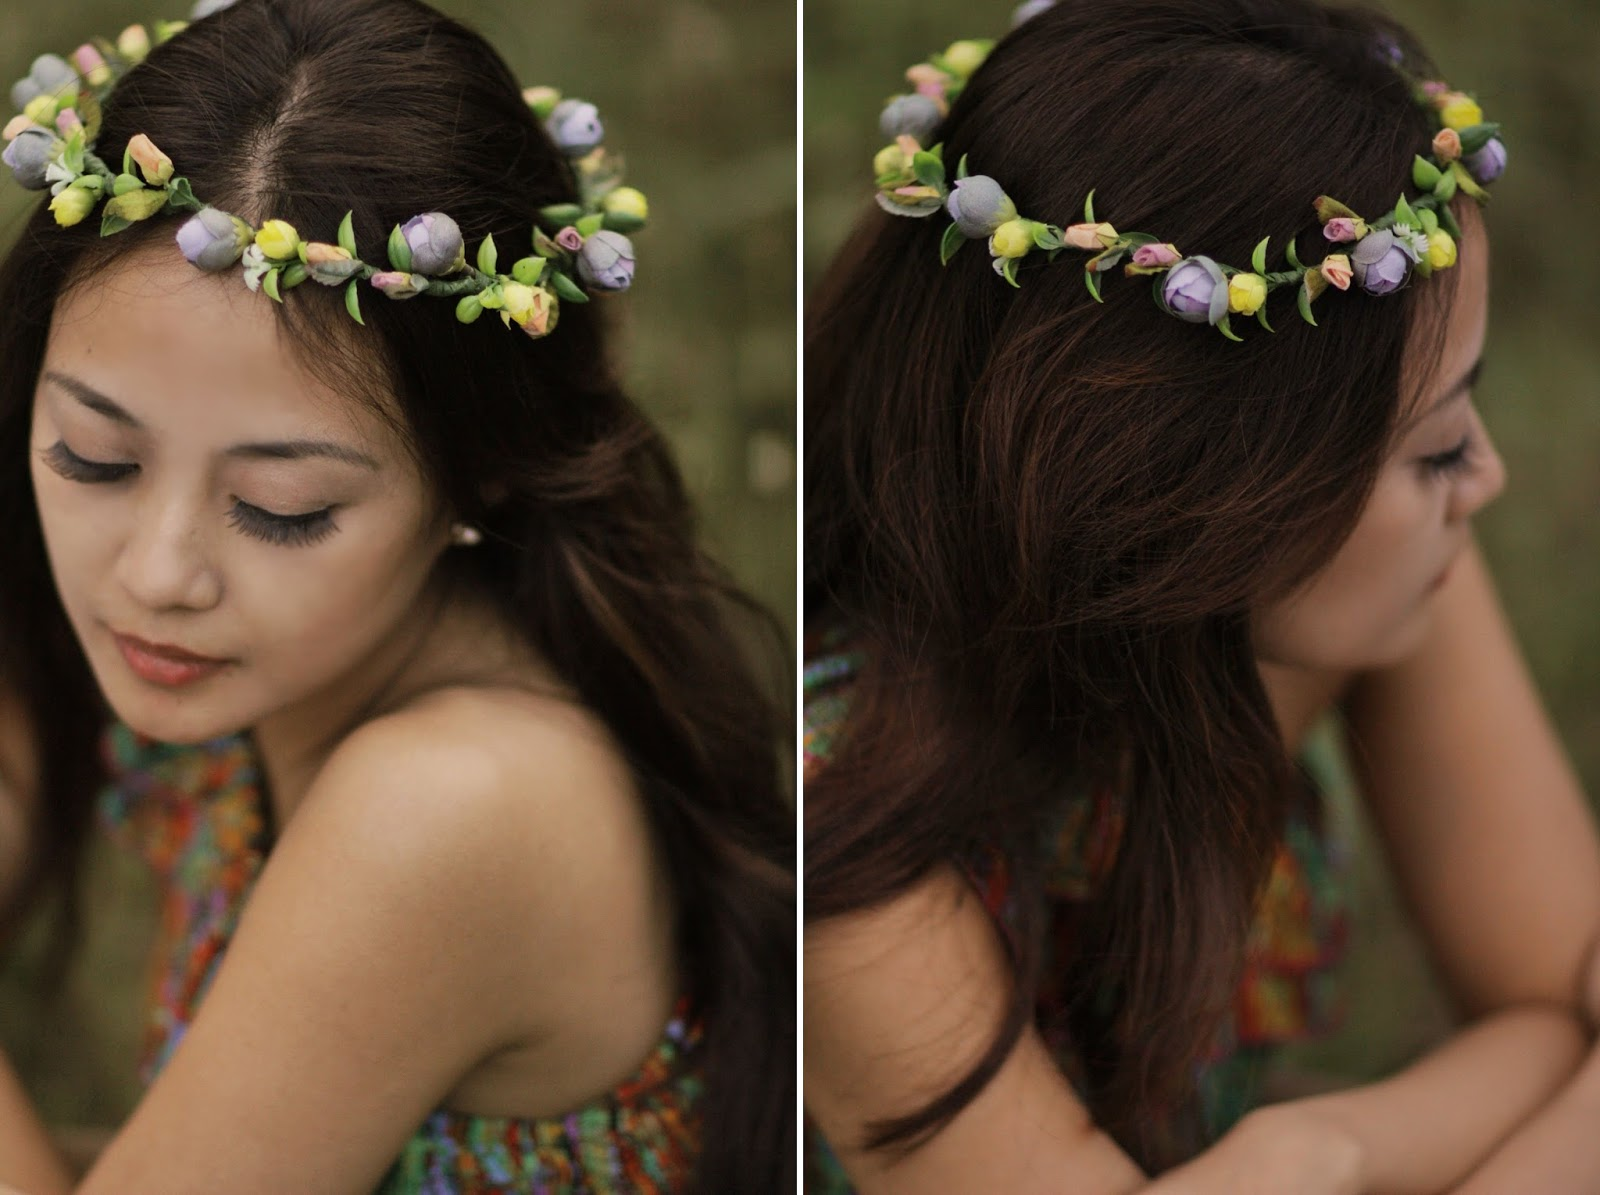 flower, head, wreath, headdress, summertrends, hair, accessories